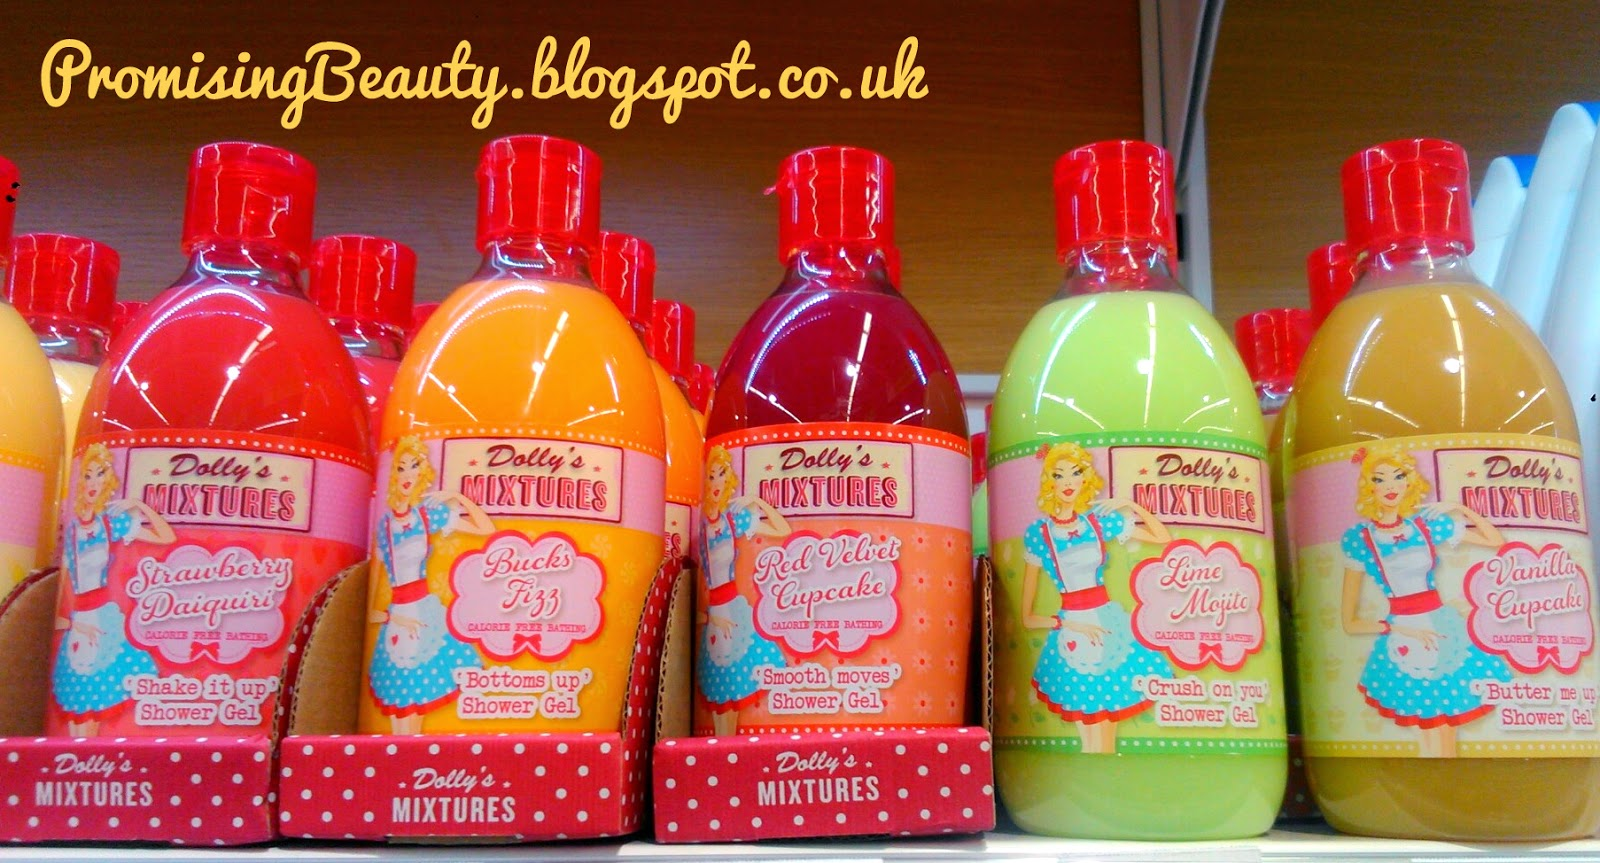 Dollys mixtures shower gel, bubble bath, bucks fizz, red velvet cupcake, lime mojito and vanilla cupcake